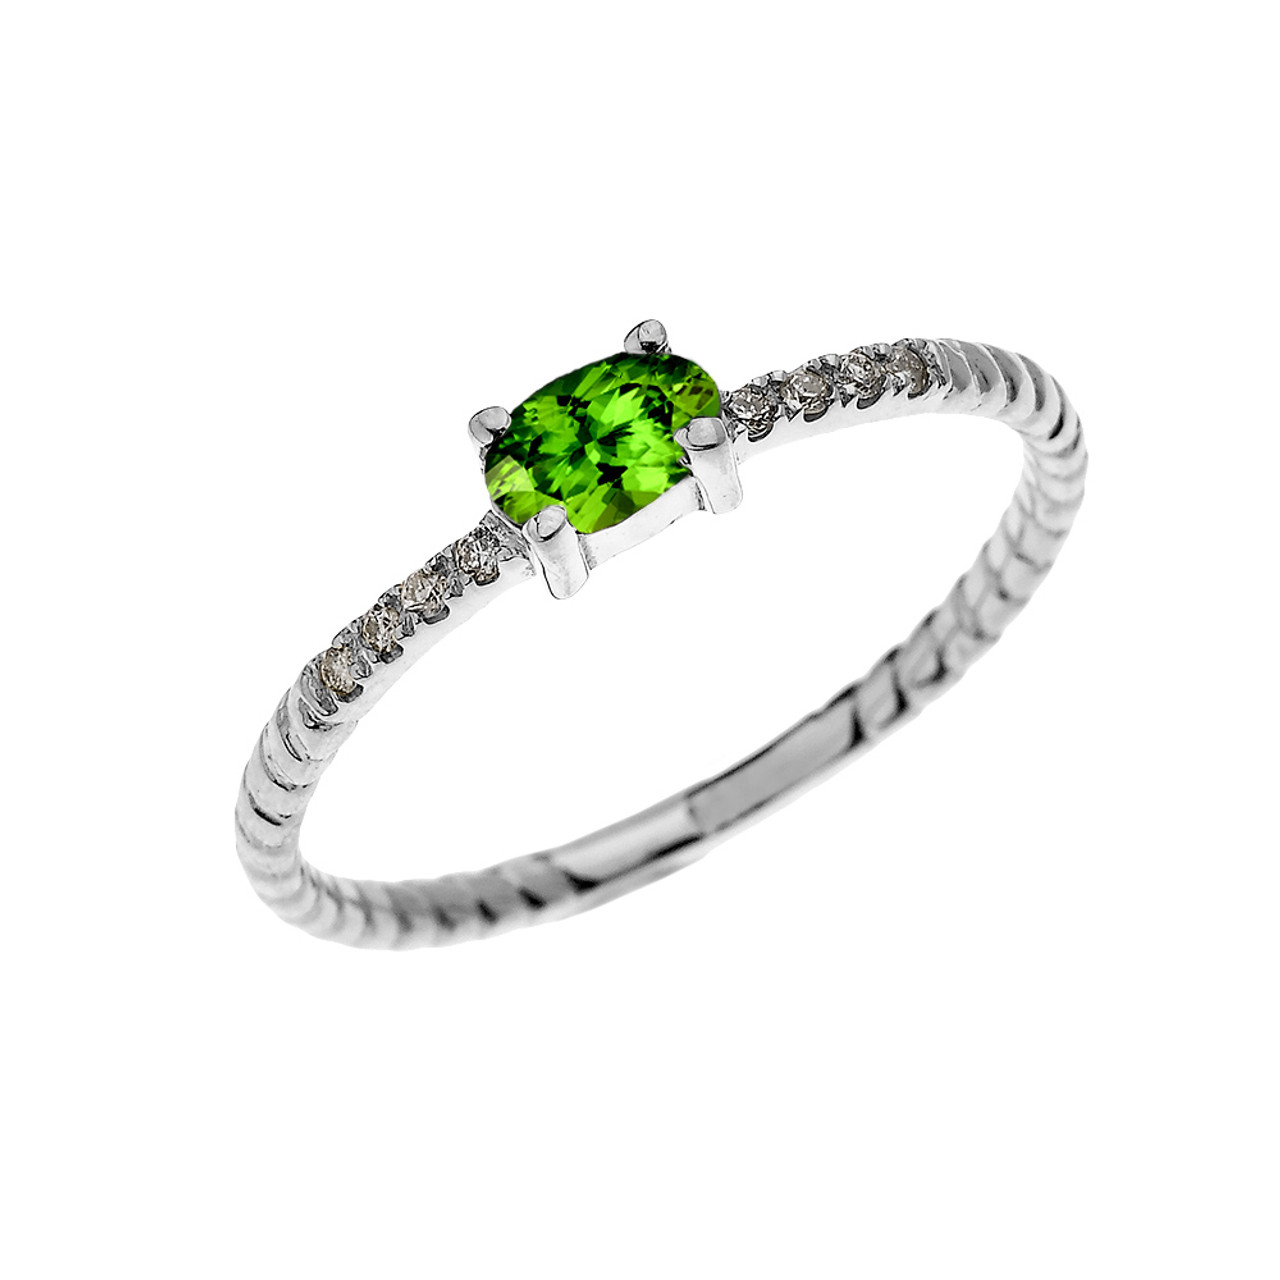 f7b672bd25f64 White Gold Dainty Solitaire Oval Peridot and Diamond Rope Design  Engagement/Proposal/Stackable Ring